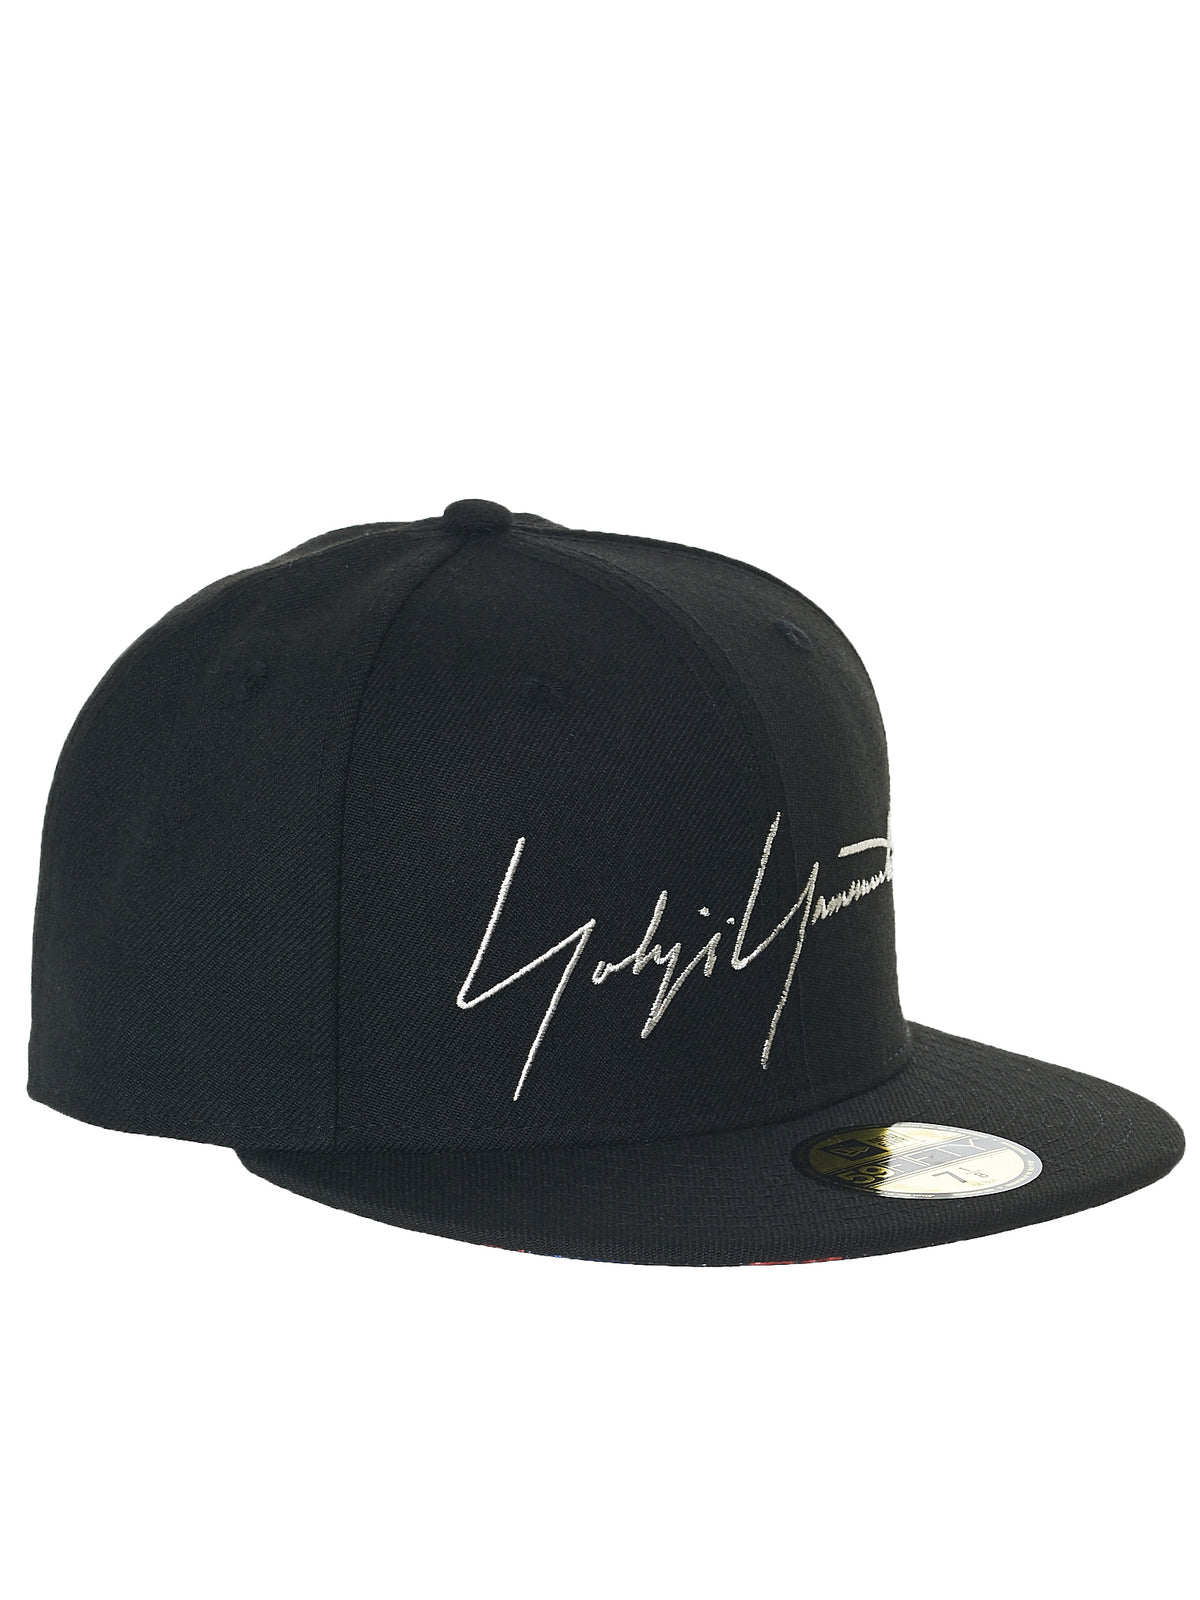 Embroidery Baseball Cap (HW-H36-160-1-BLACK)